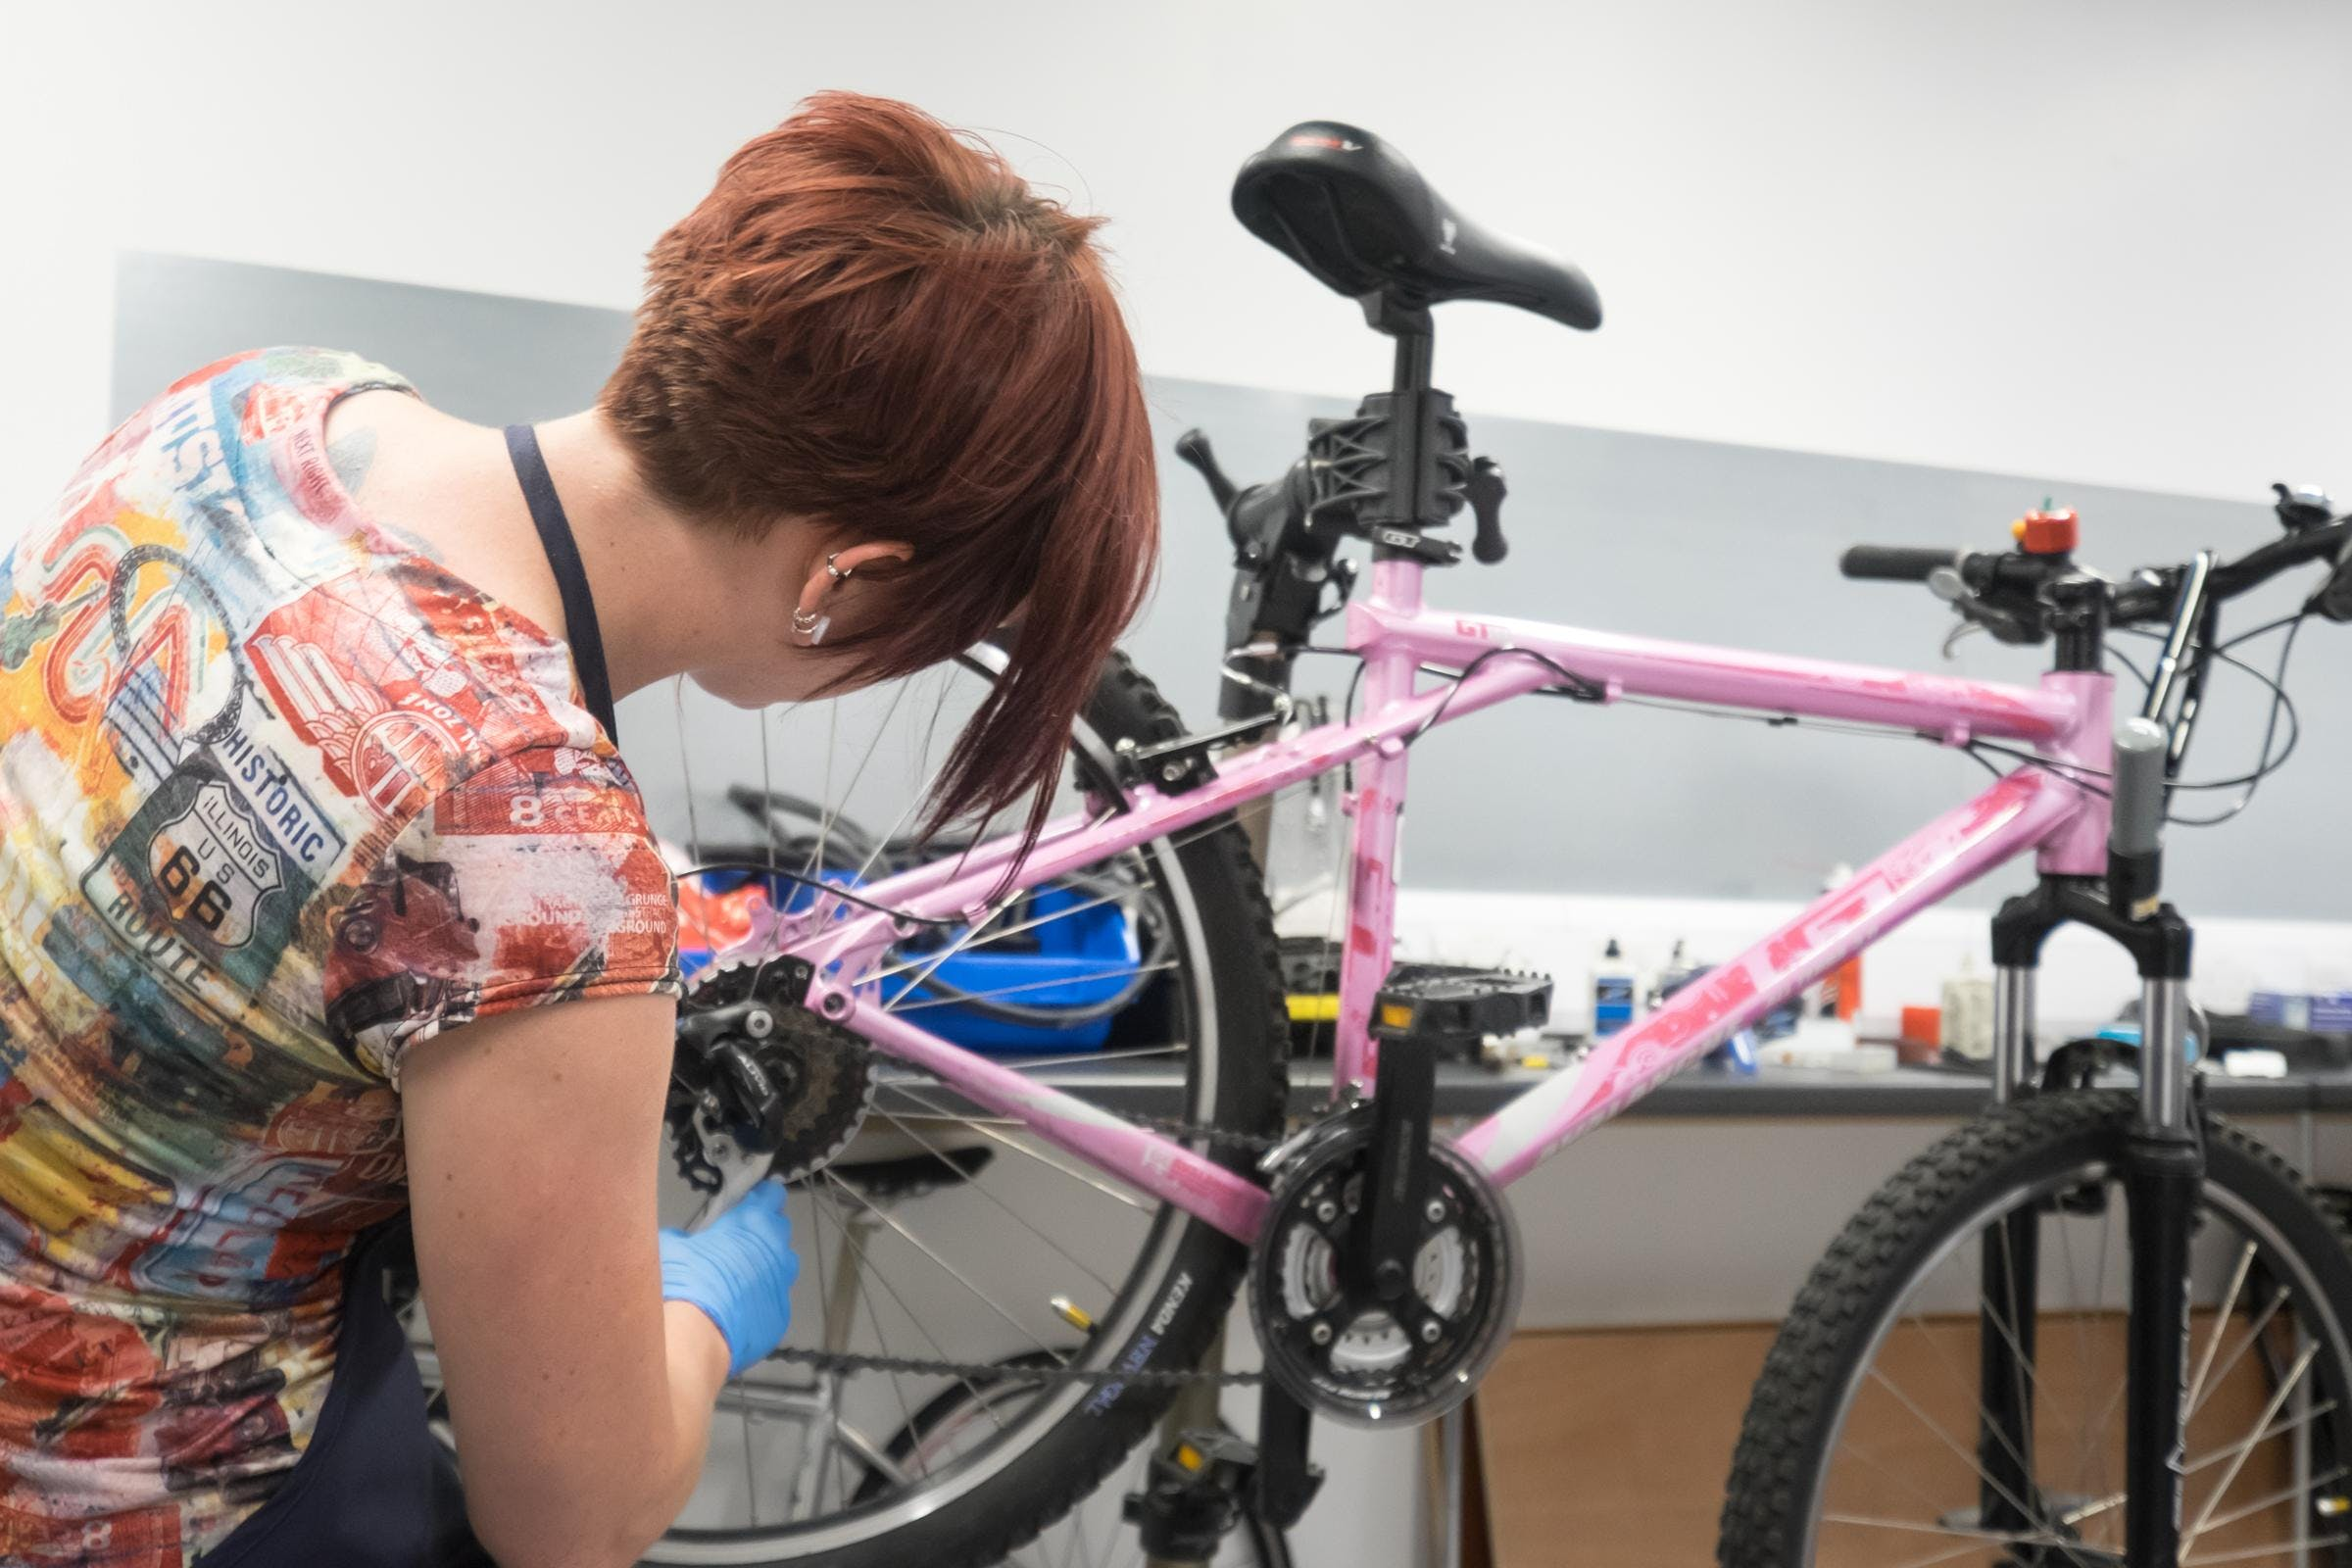 Intermediate bicycle maintenance [Stockport]